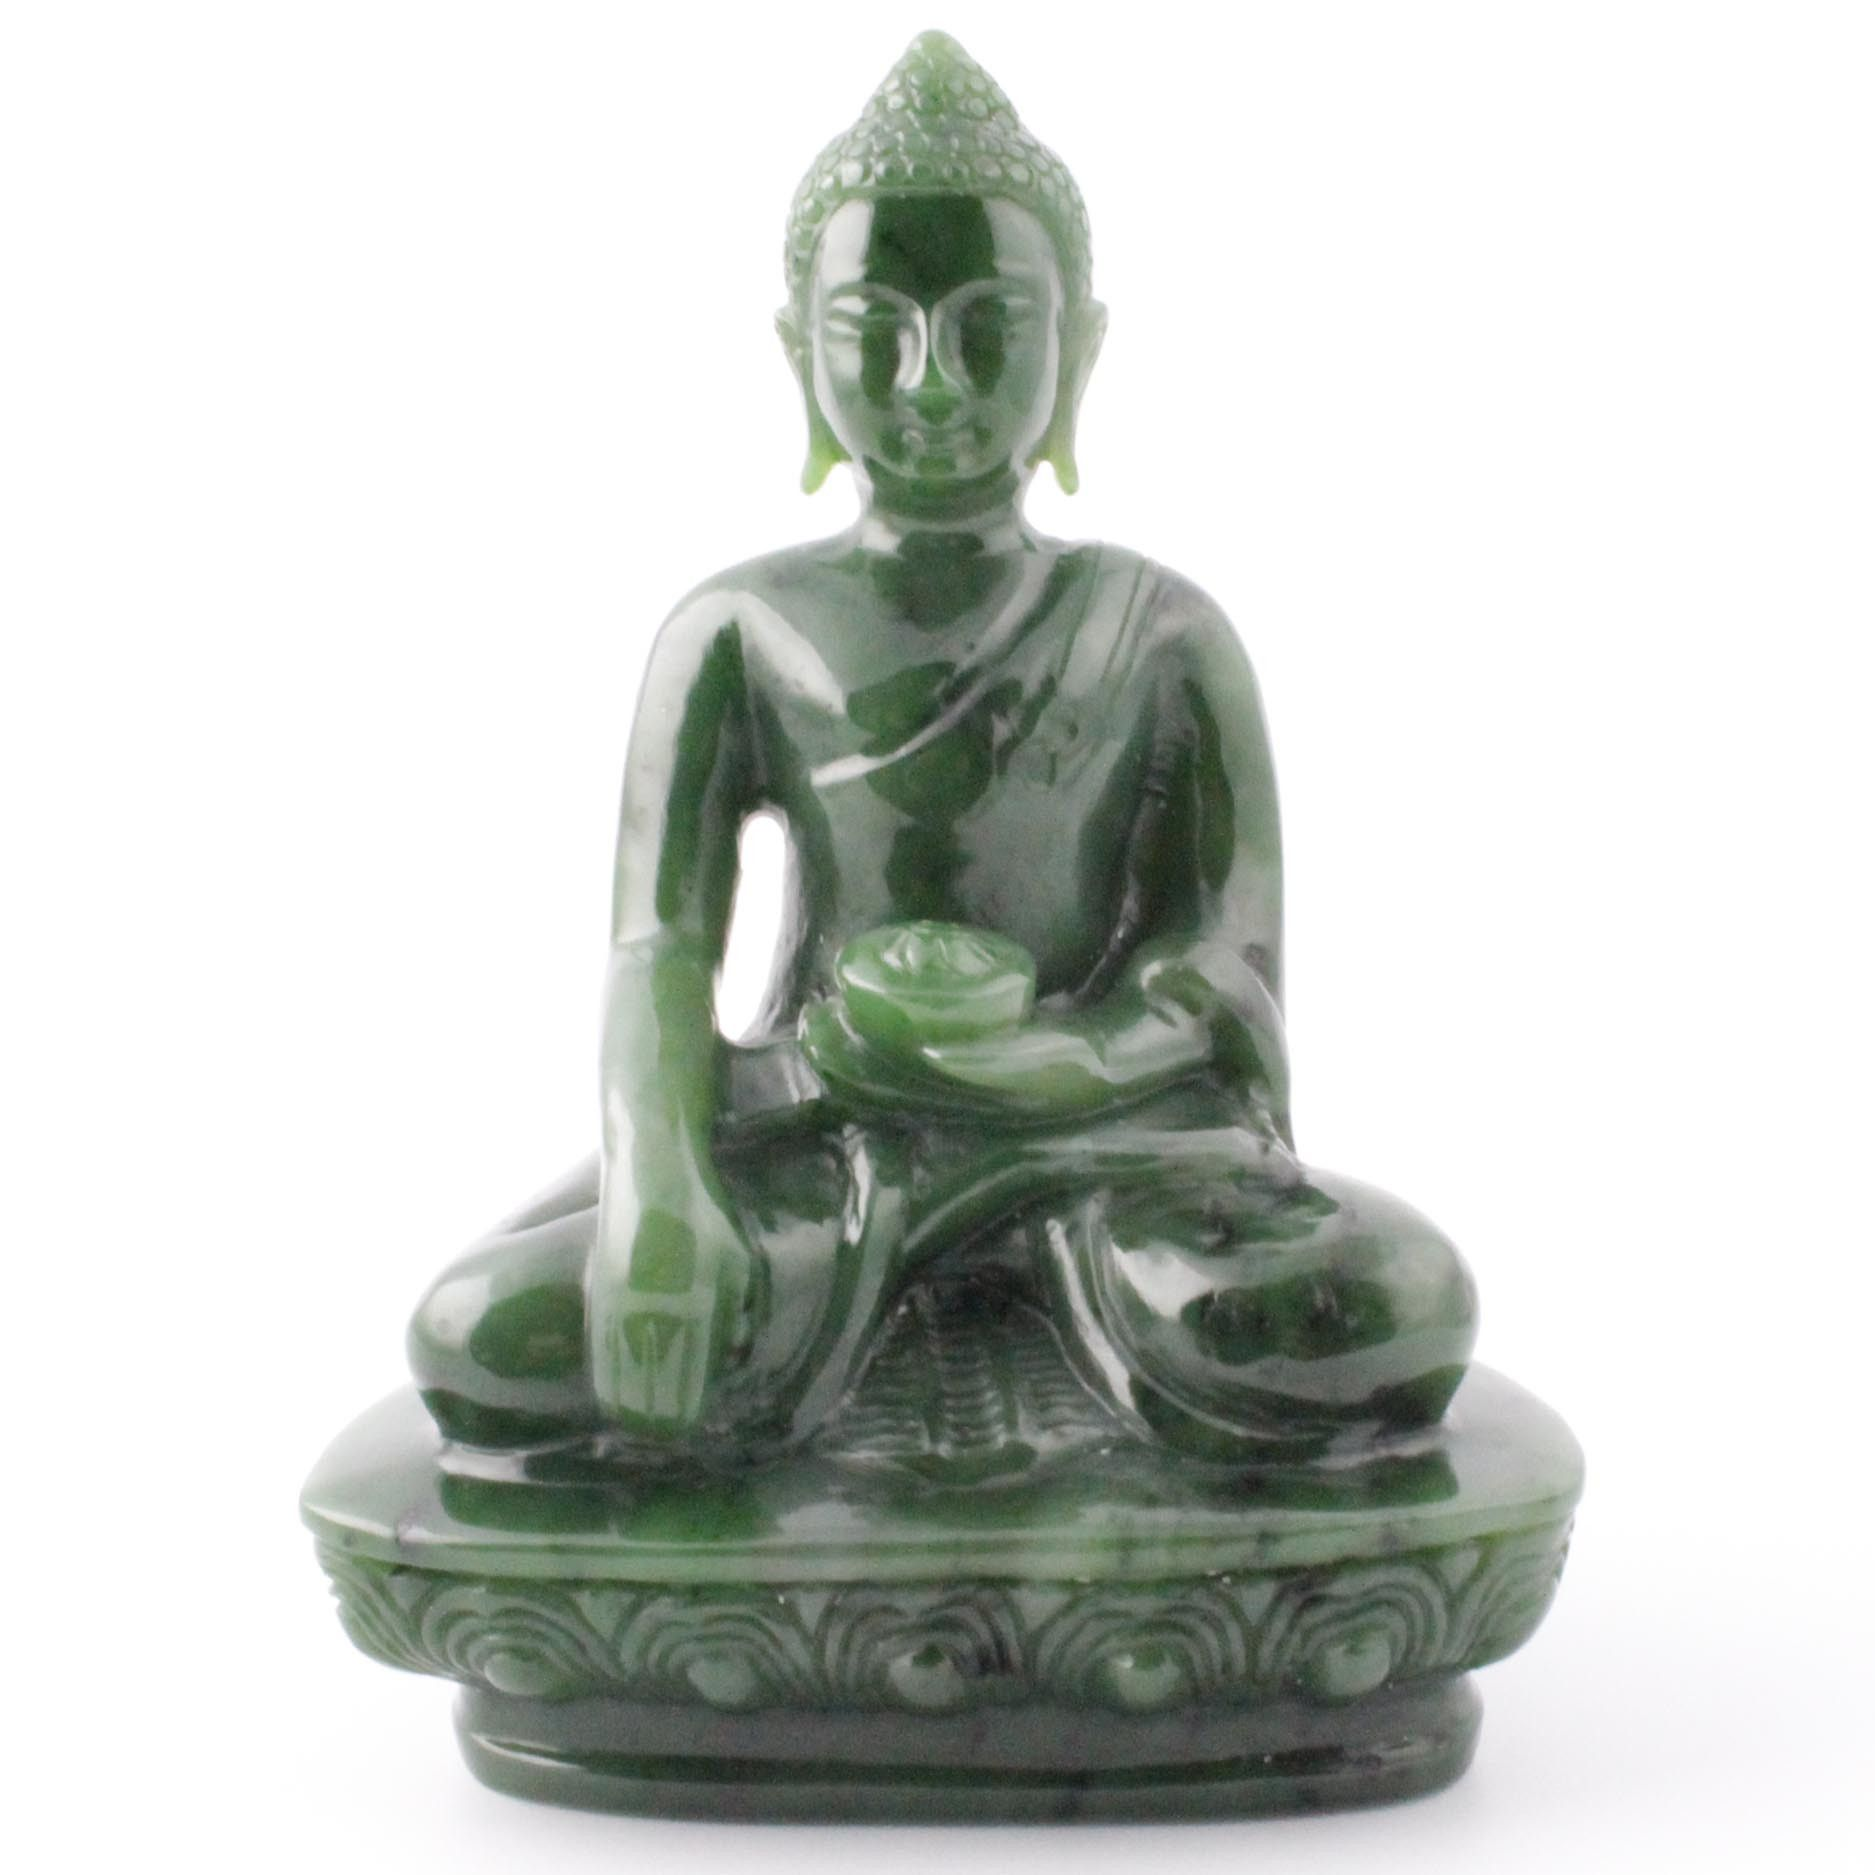 Jade Medicine Buddha Statue Approximately 5 Inches Tall Fine, nephrite Jade  carved into a perfect